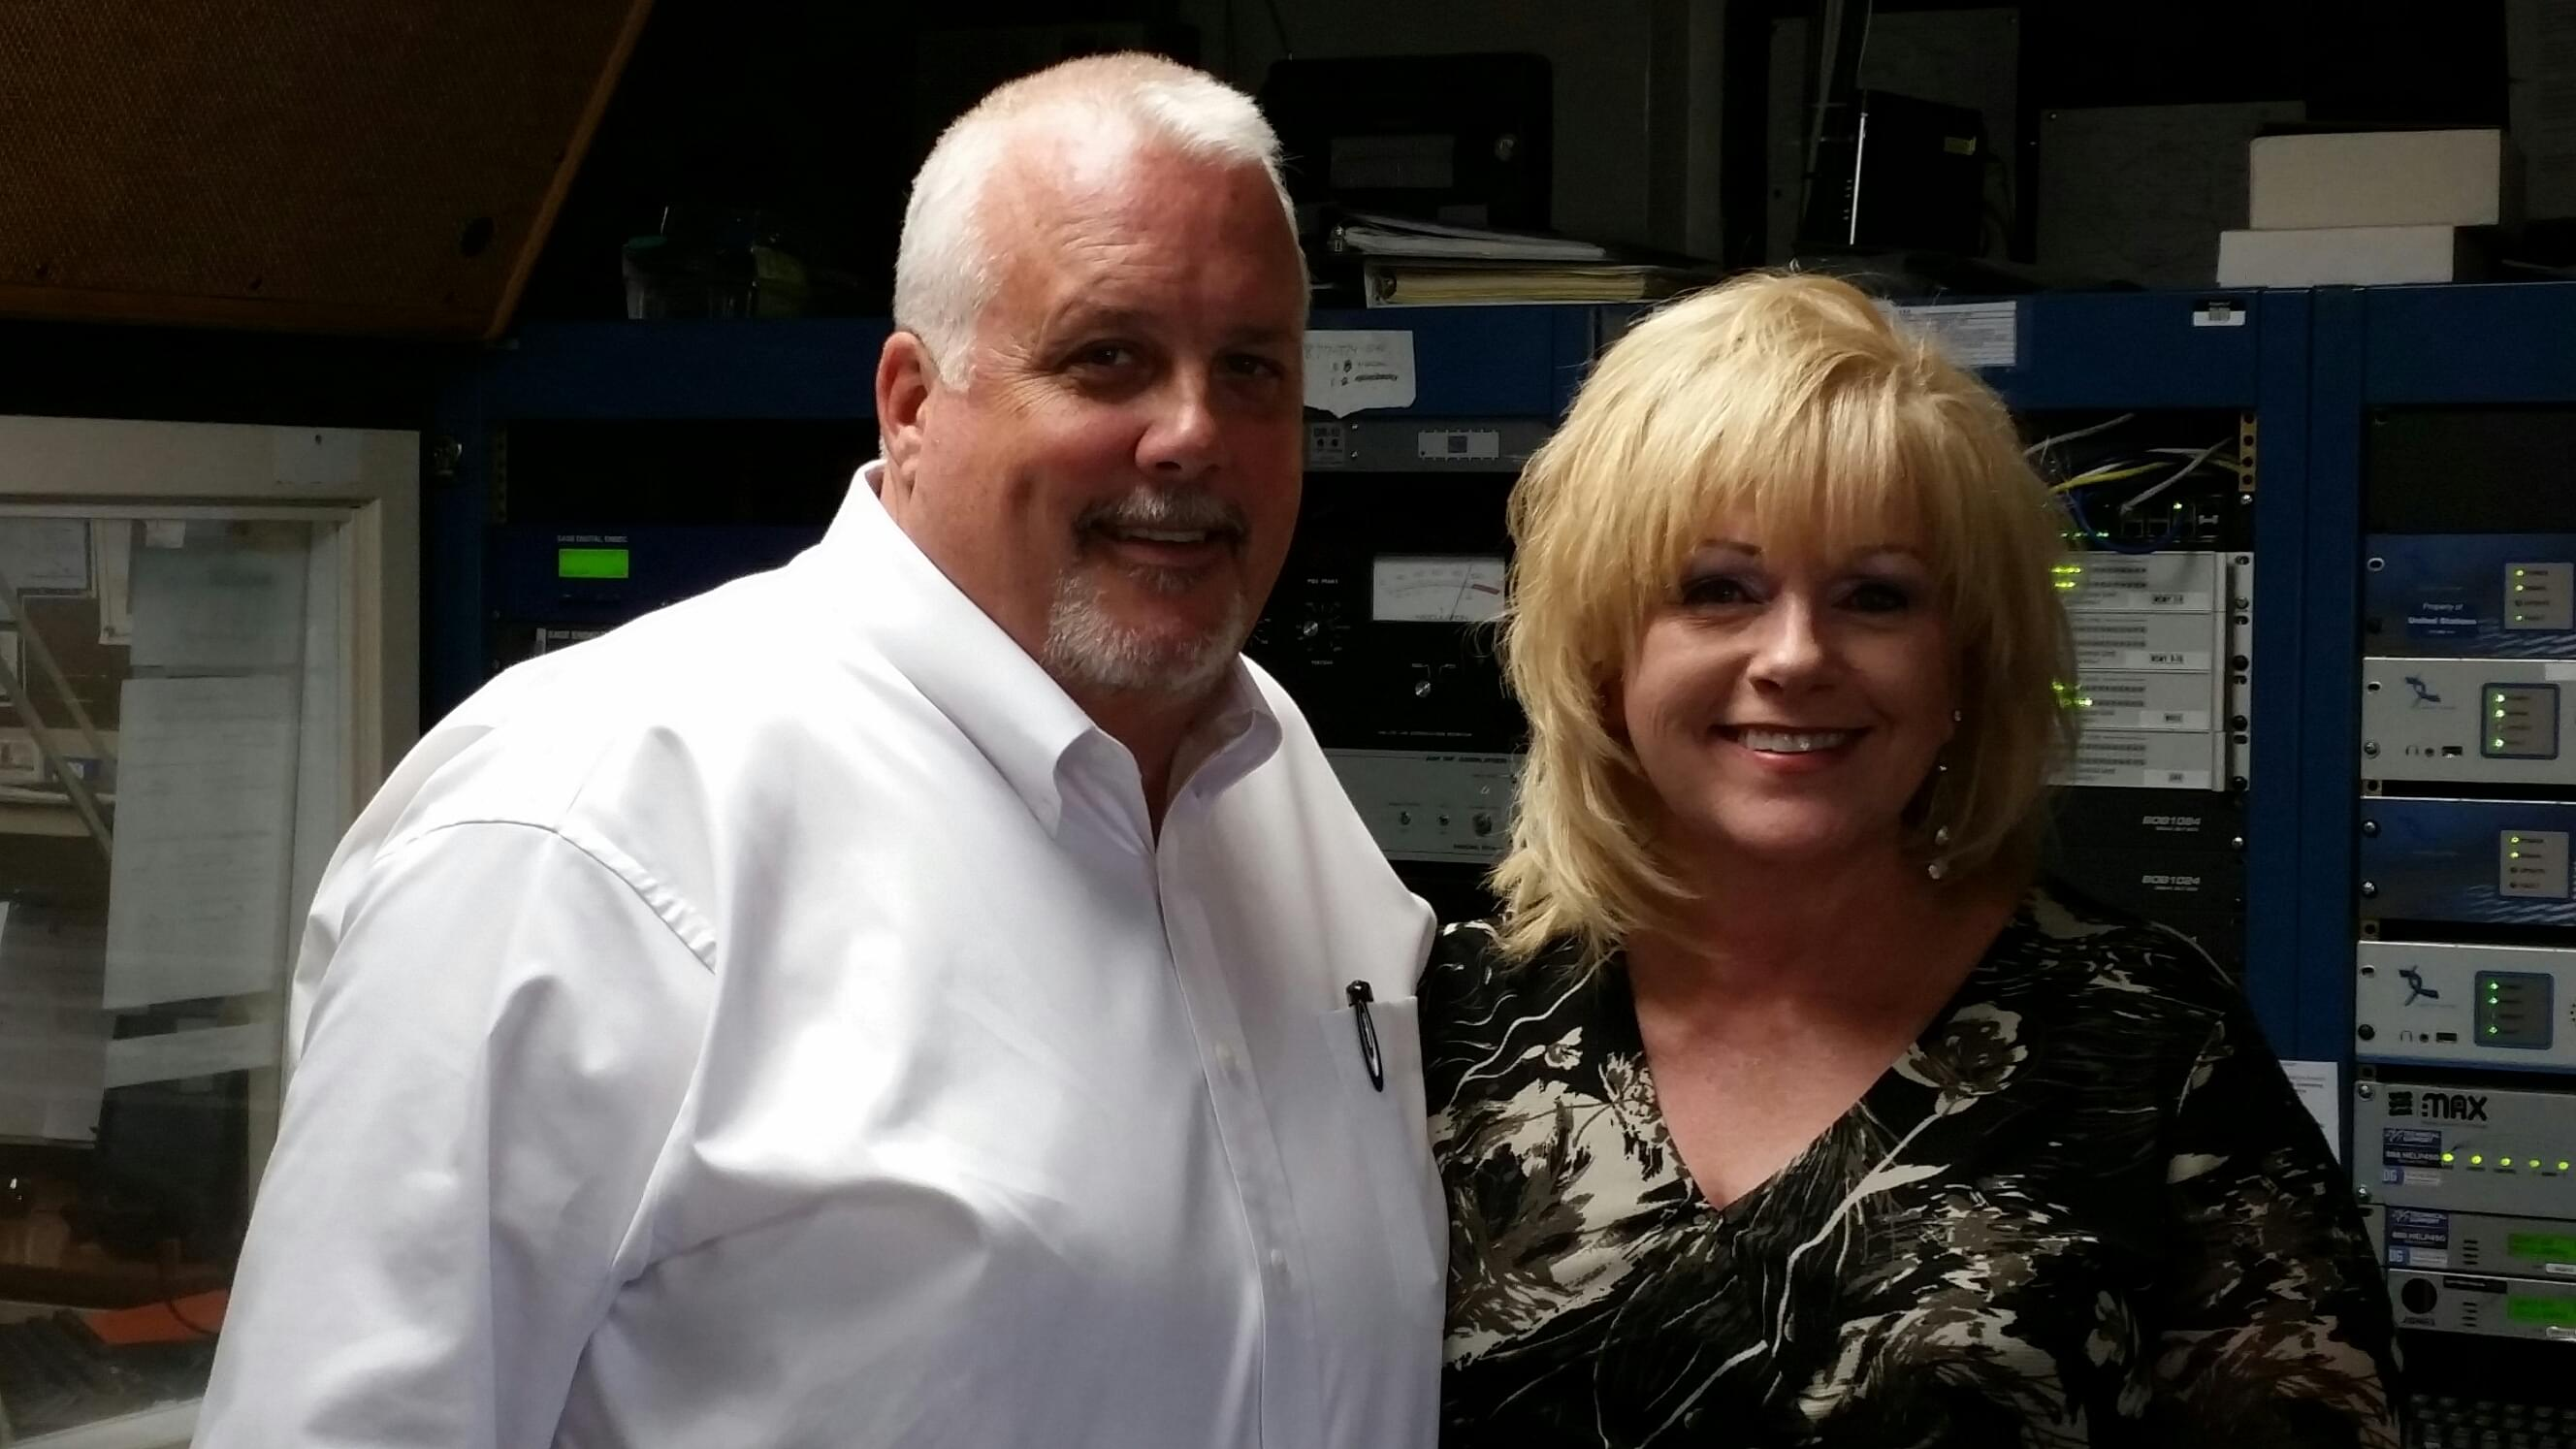 mike and me 8-28-14